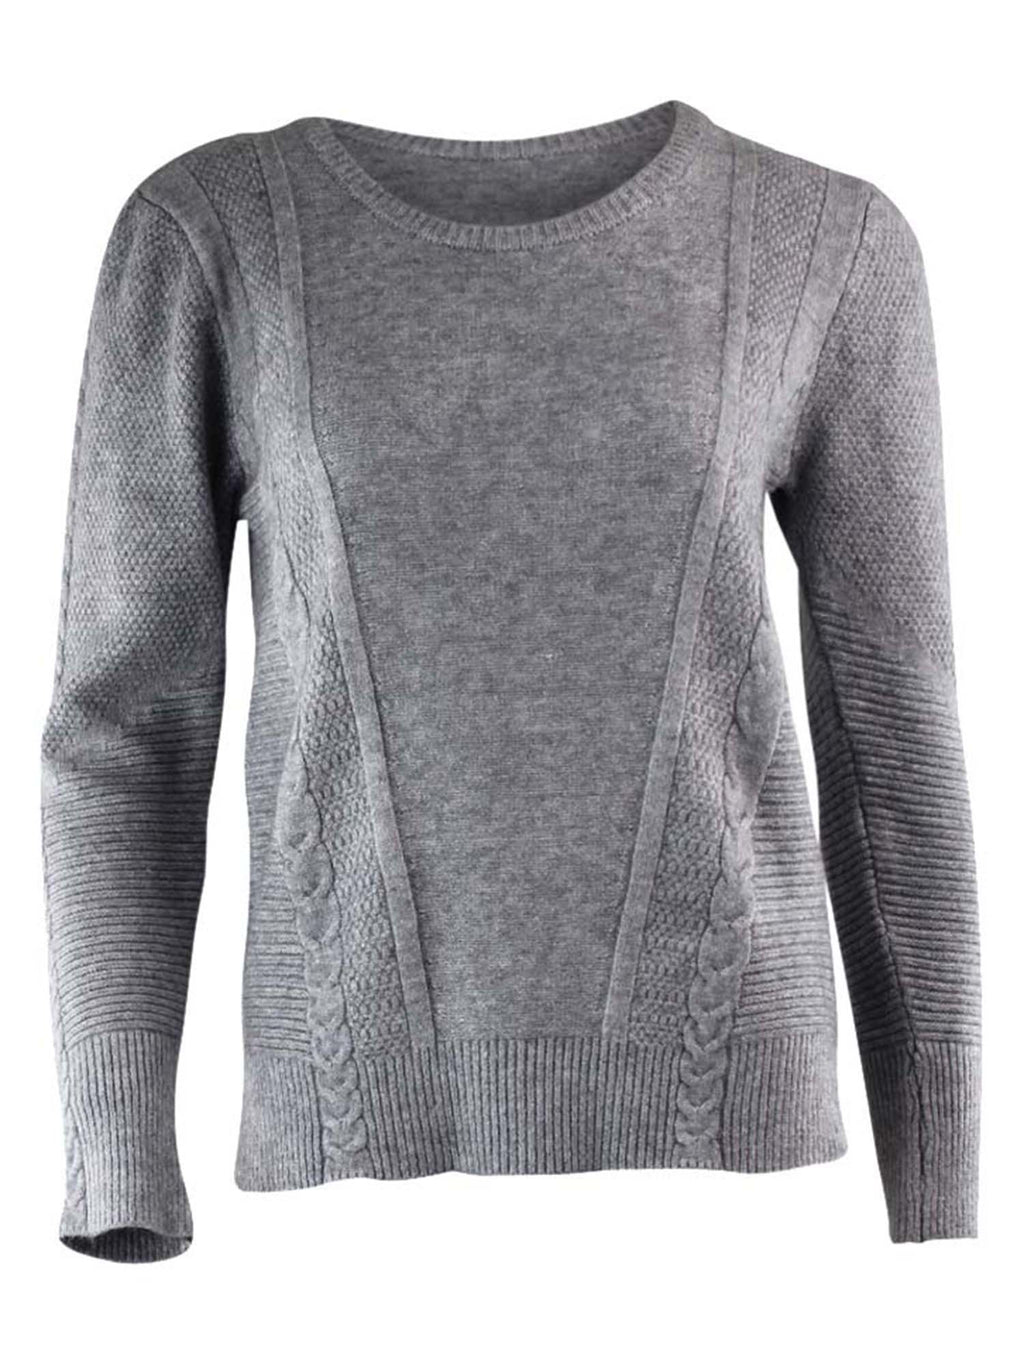 Soft Cable Knit Crew Neck Sweater